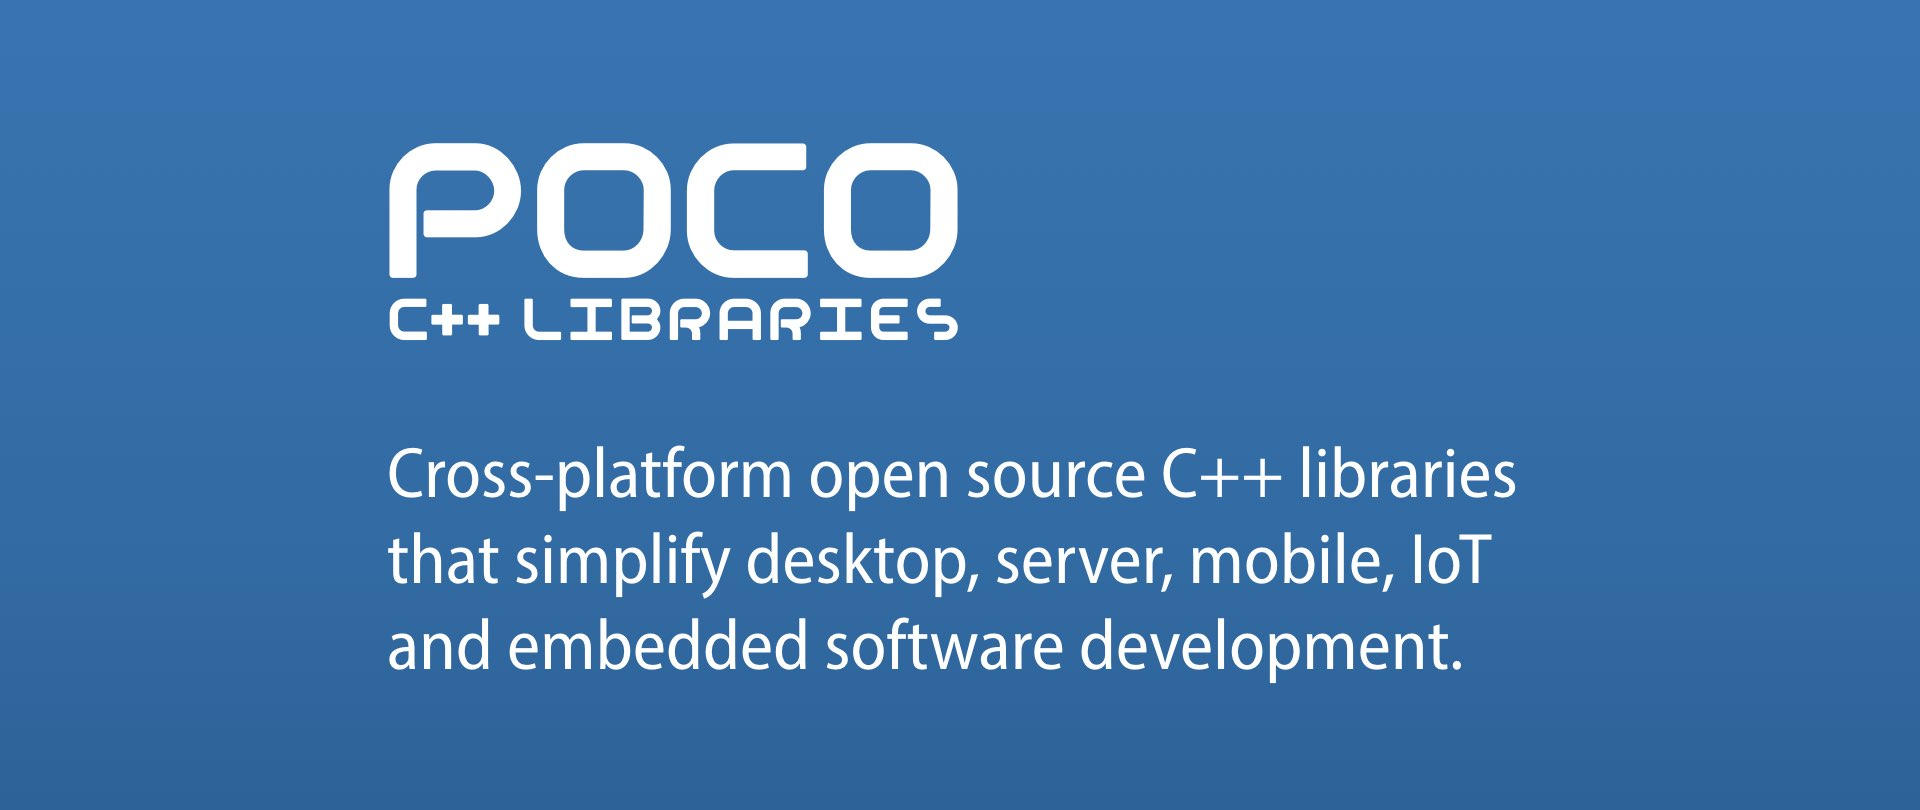 POCO C++ Libraries - Blog